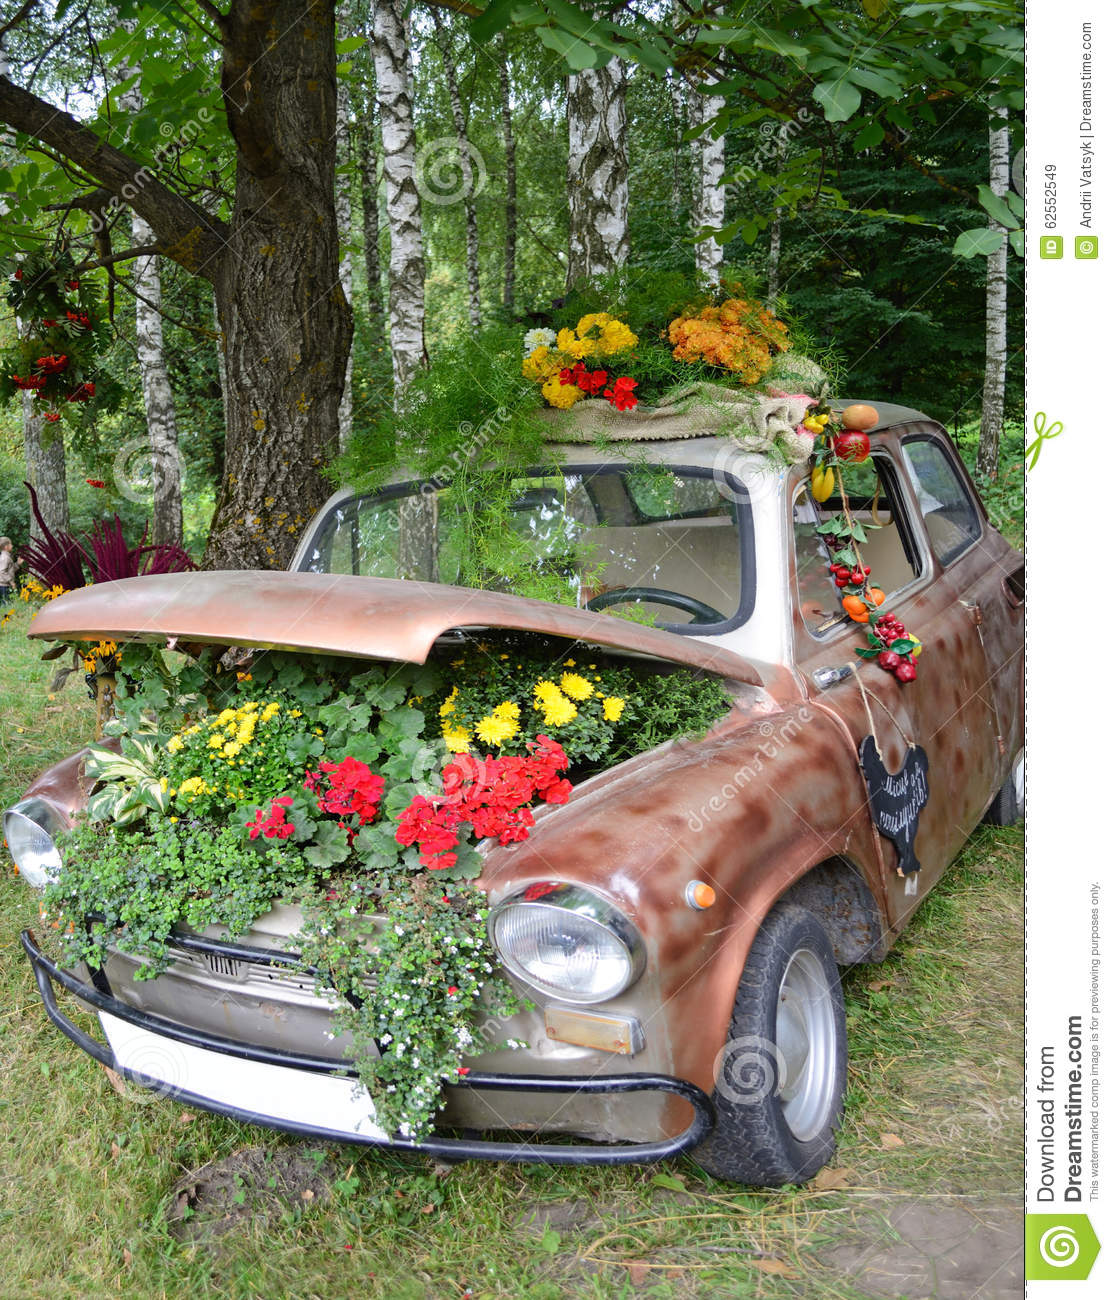 Flowers Under The Hood Of An Old Car Stock Image